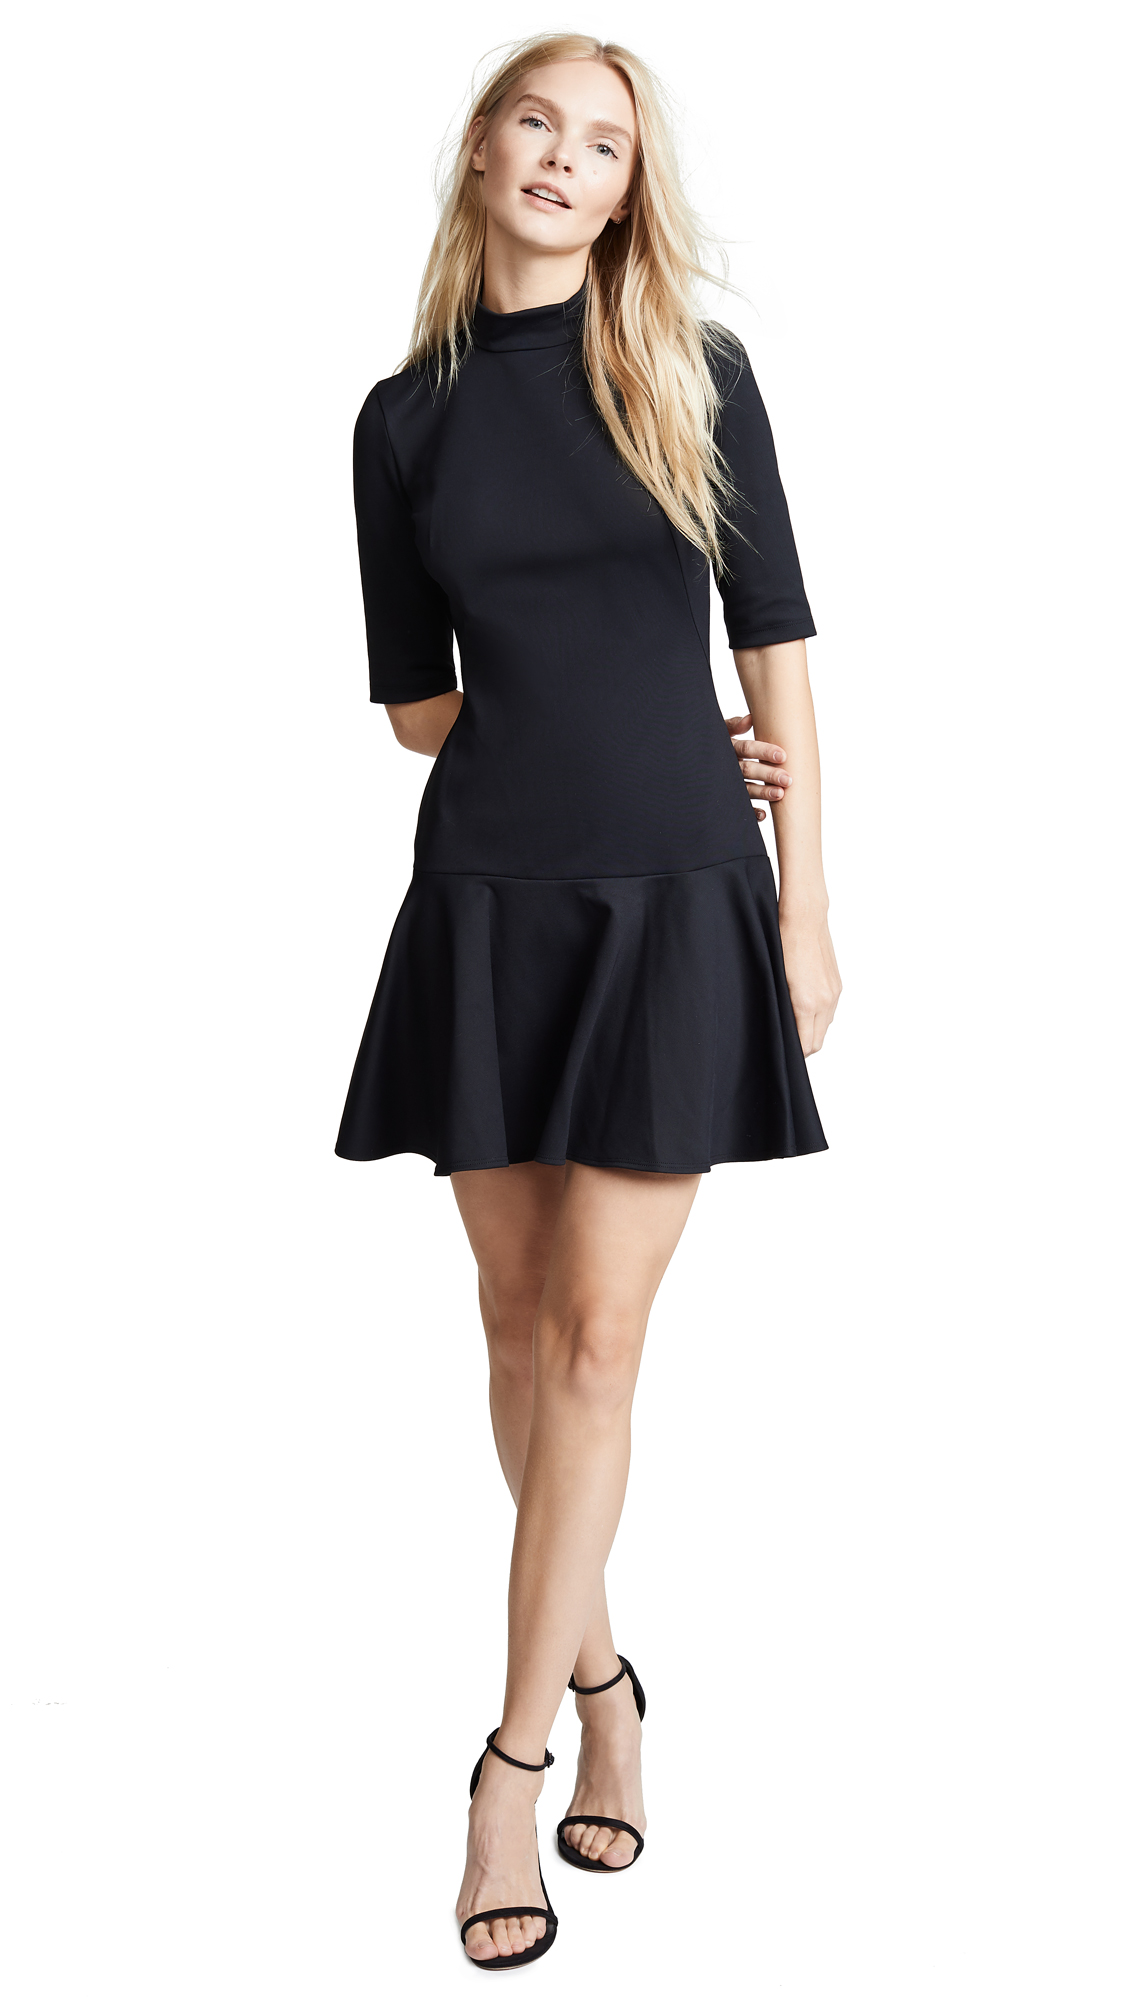 Black Halo Reeder Dress - Black